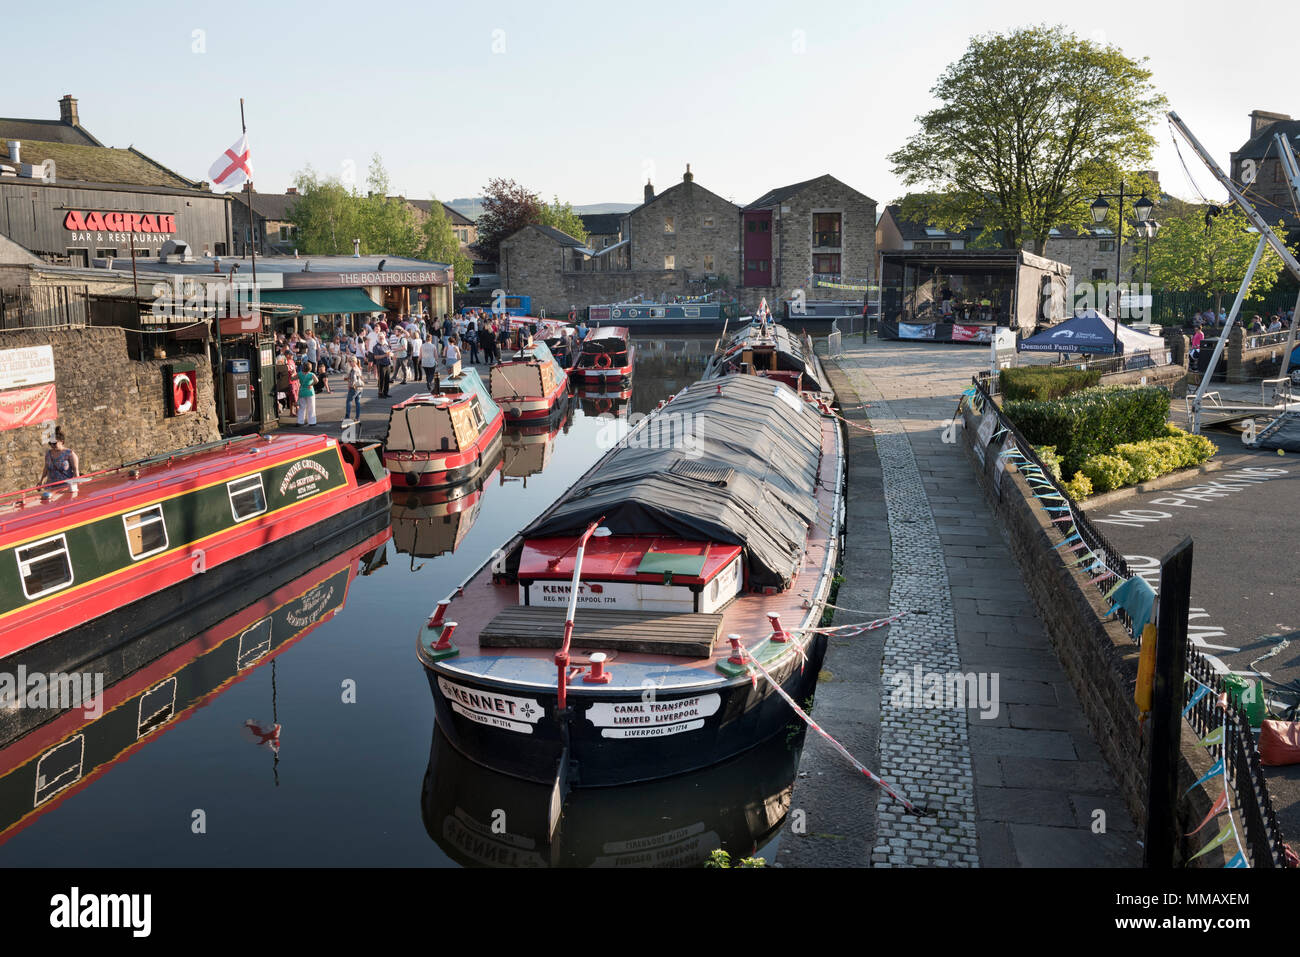 Skipton Waterways Festival, North Yorkshire, May 2018. - Stock Image